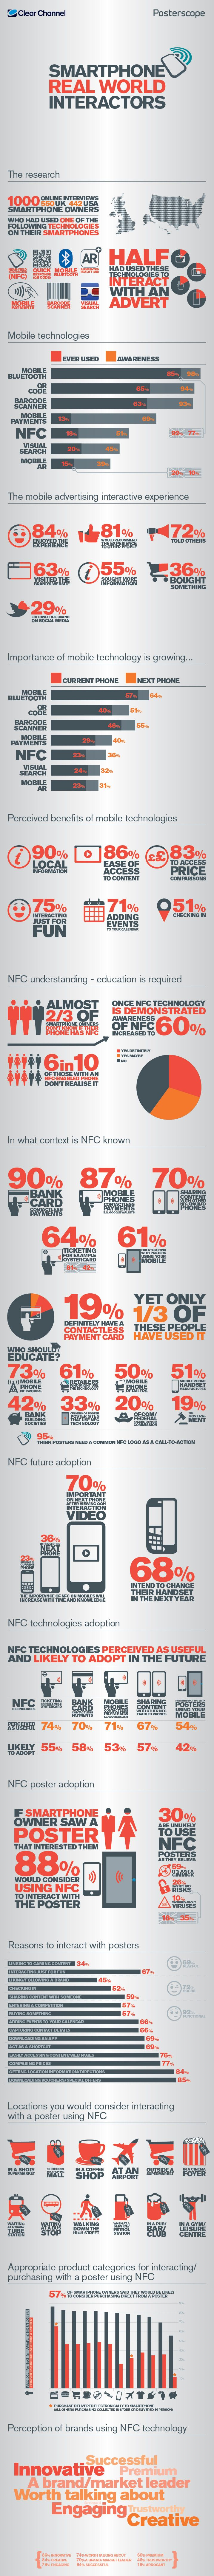 Mobile Smartphone NFC infographic